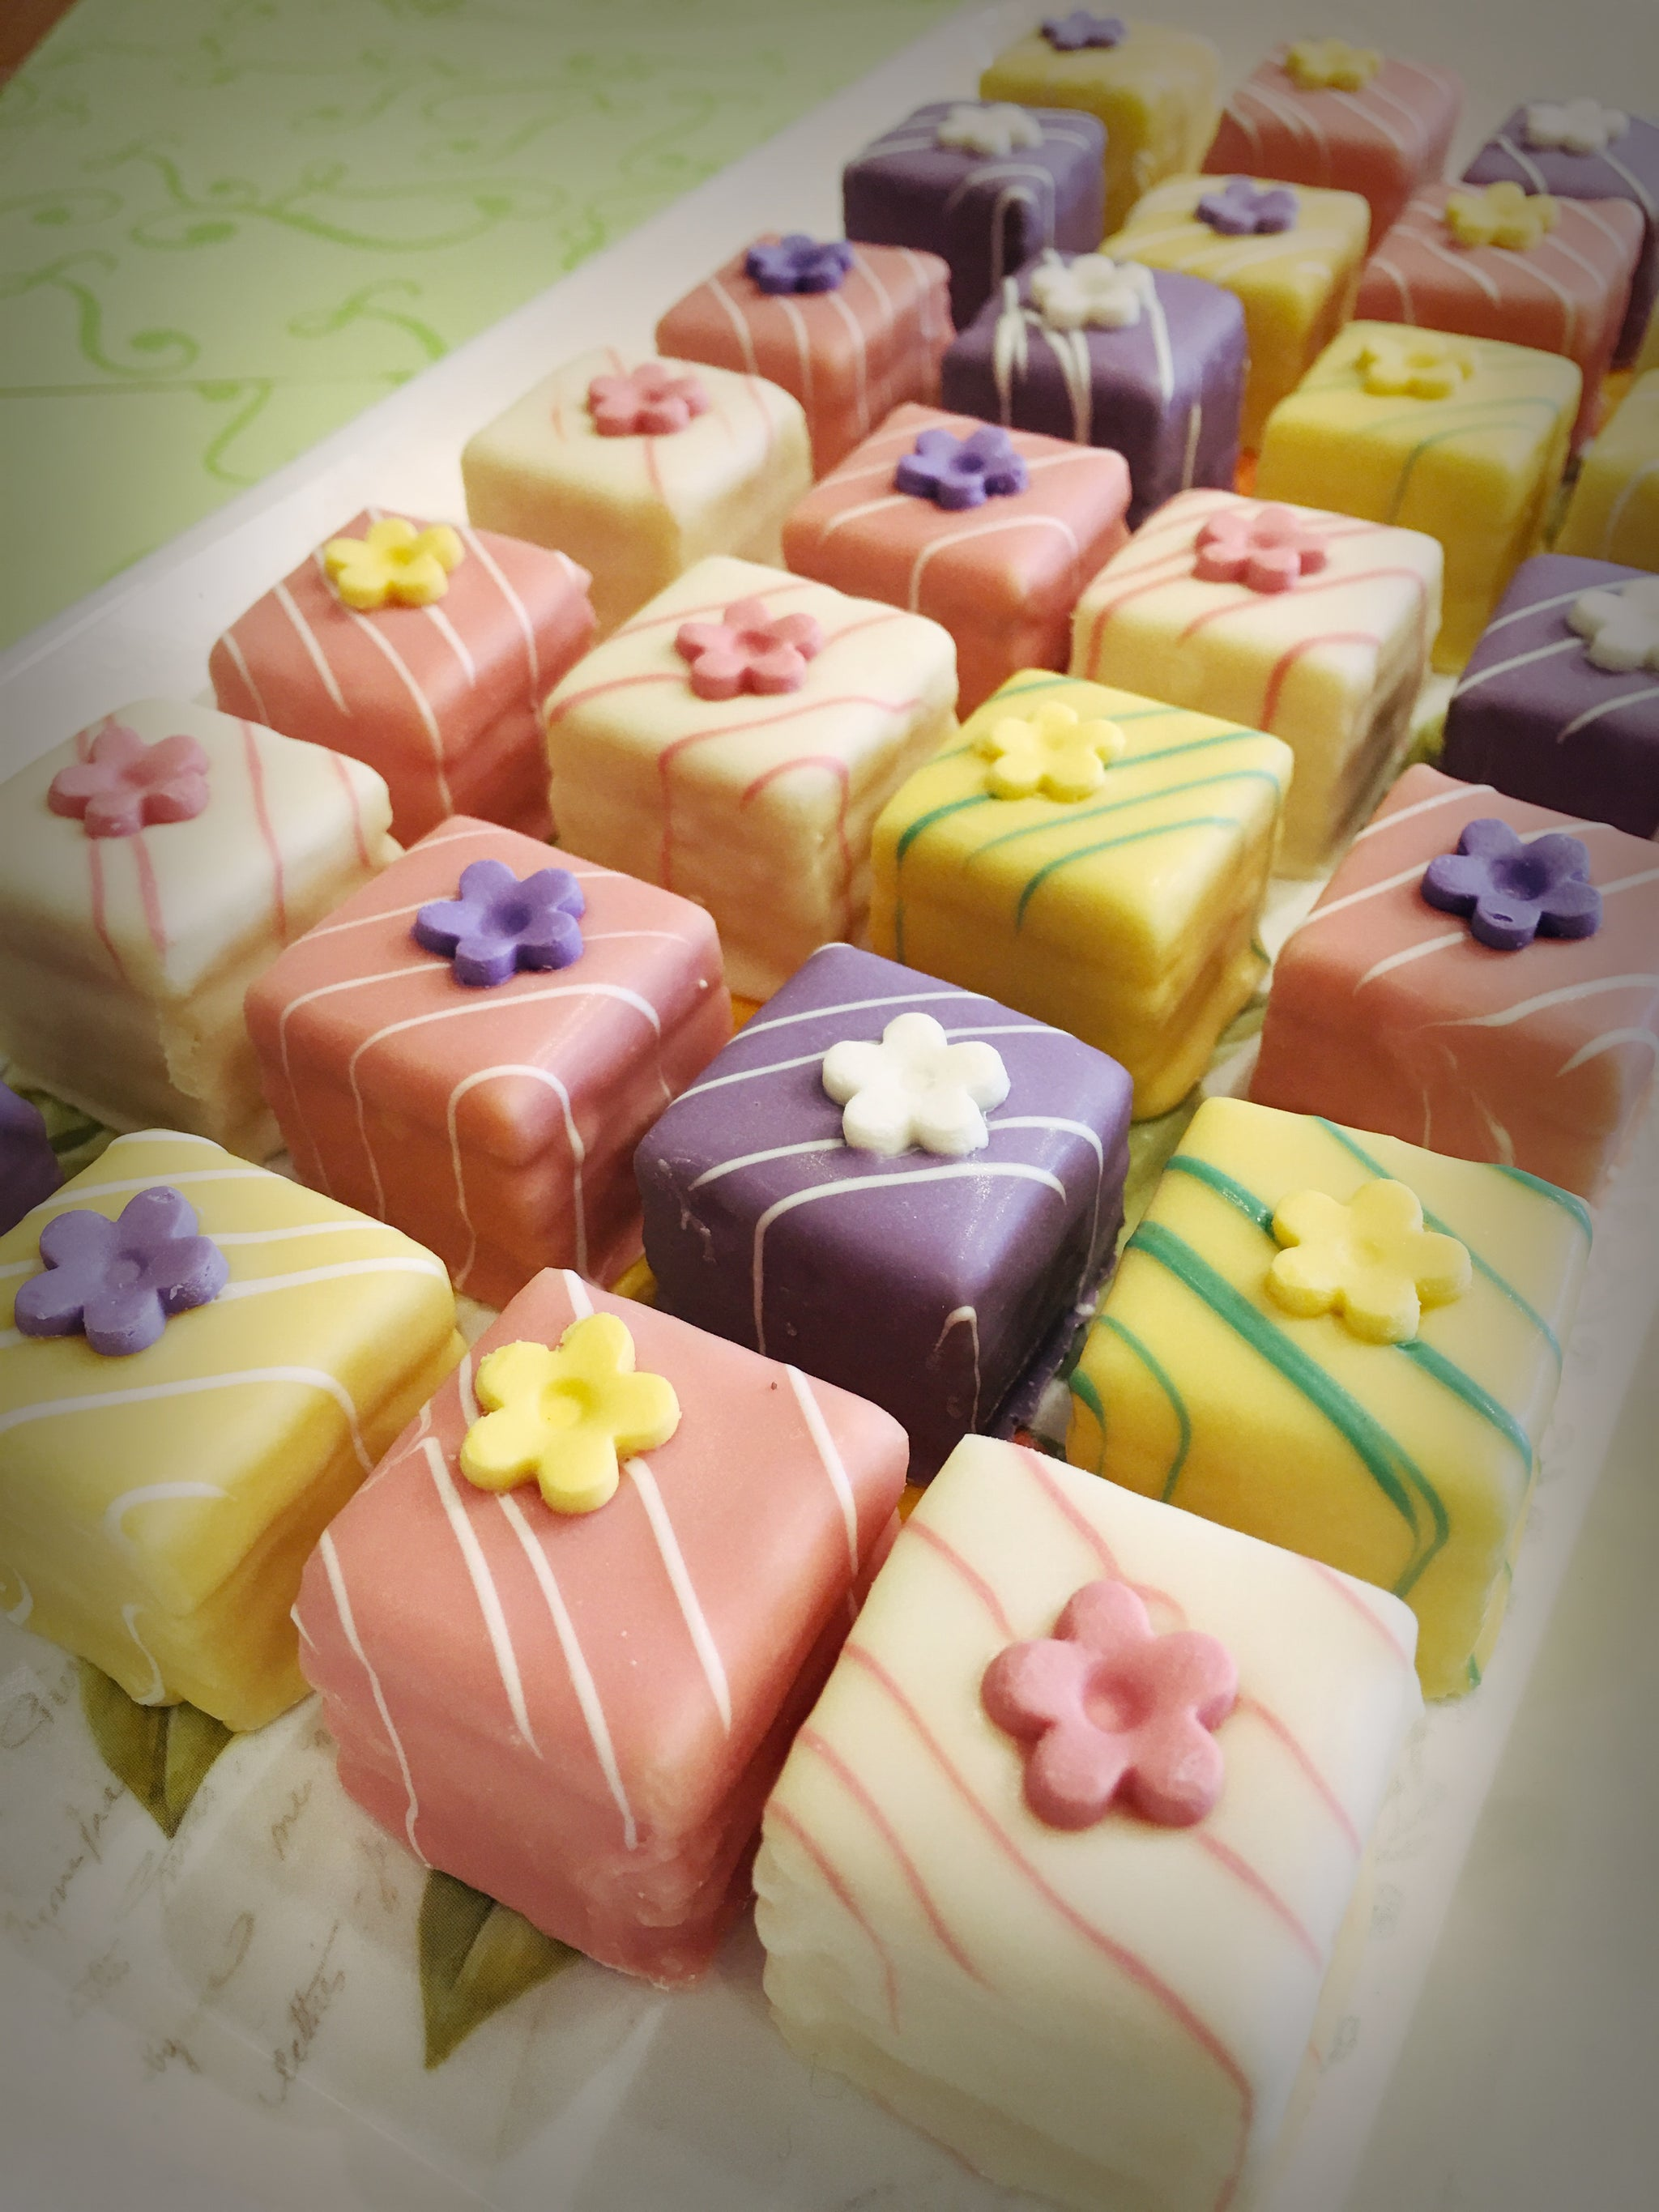 assorted petit fours ready for gifting